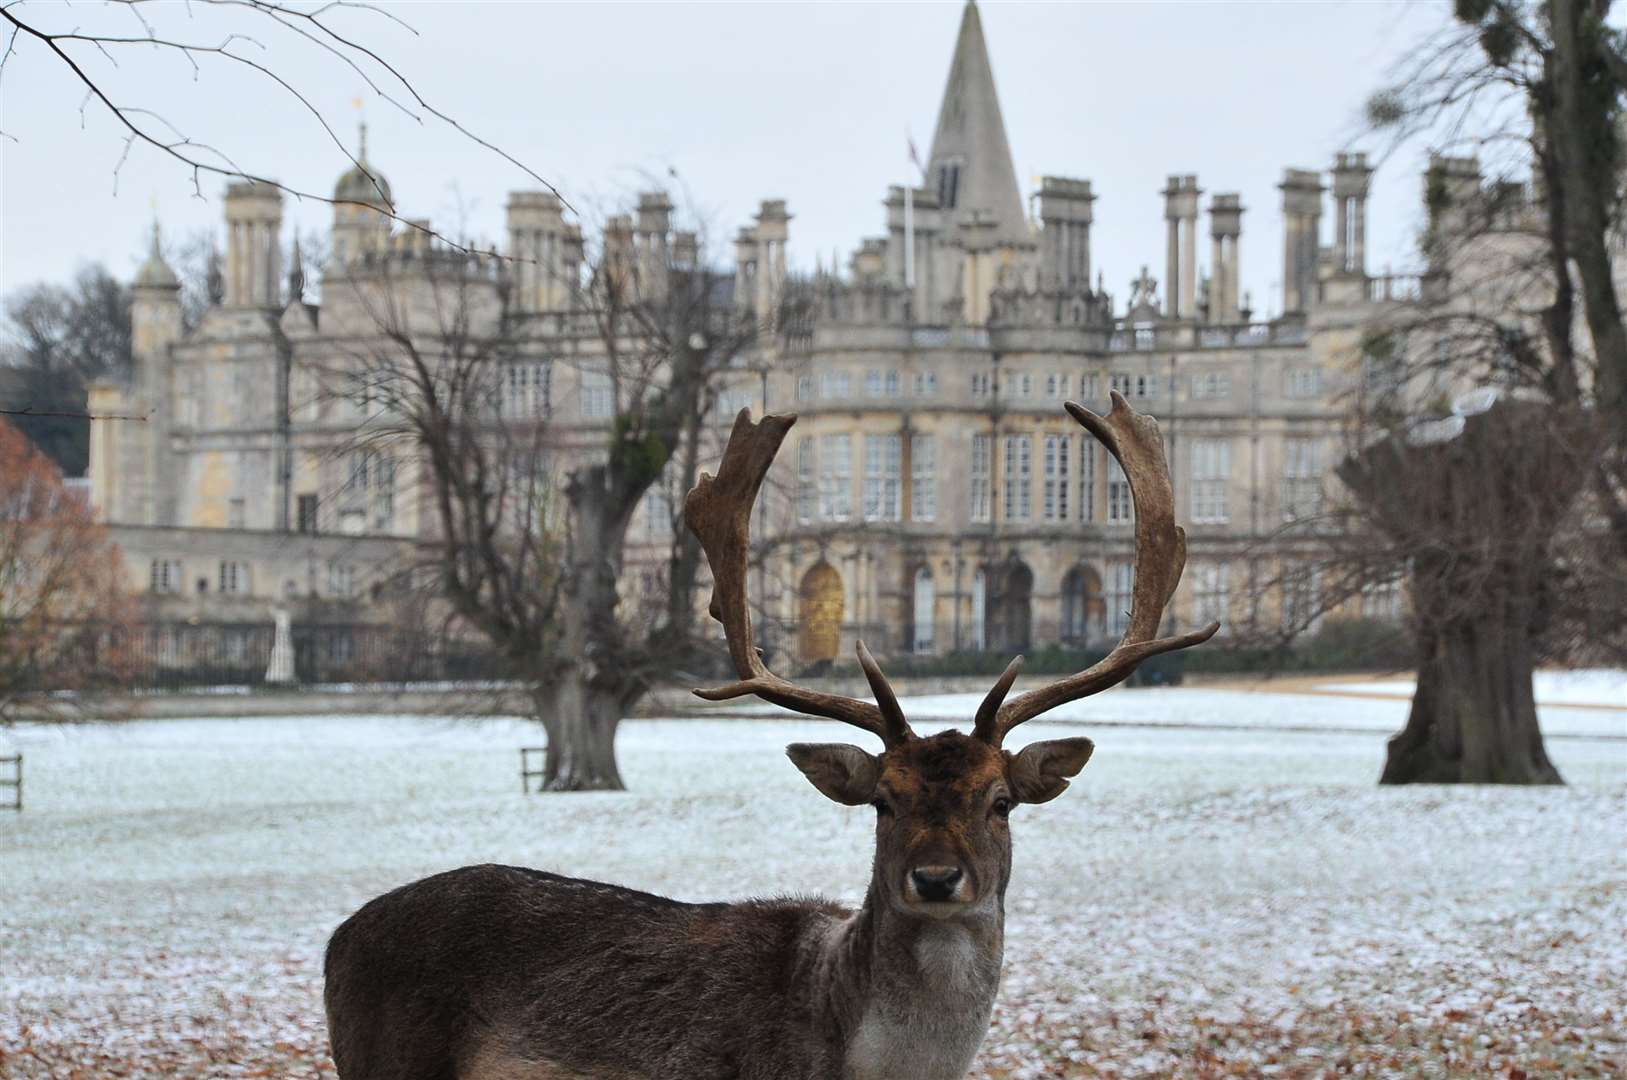 Deer at Burghley House in the winter weather